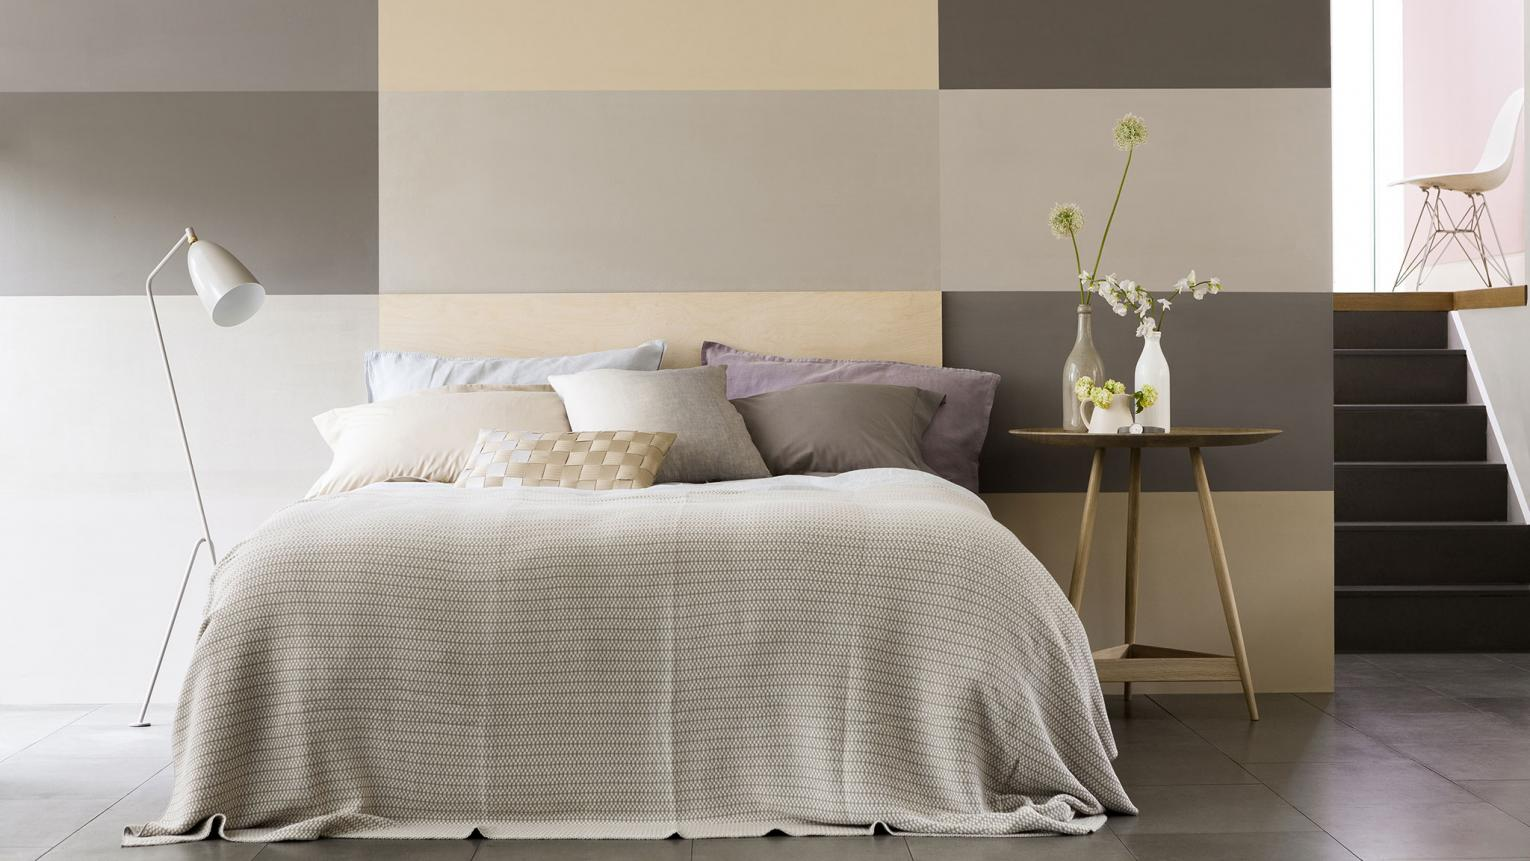 Want to create a bedroom that could be for a boy or a girl? The key is to choose a colour scheme that has both masculine and feminine appeal.